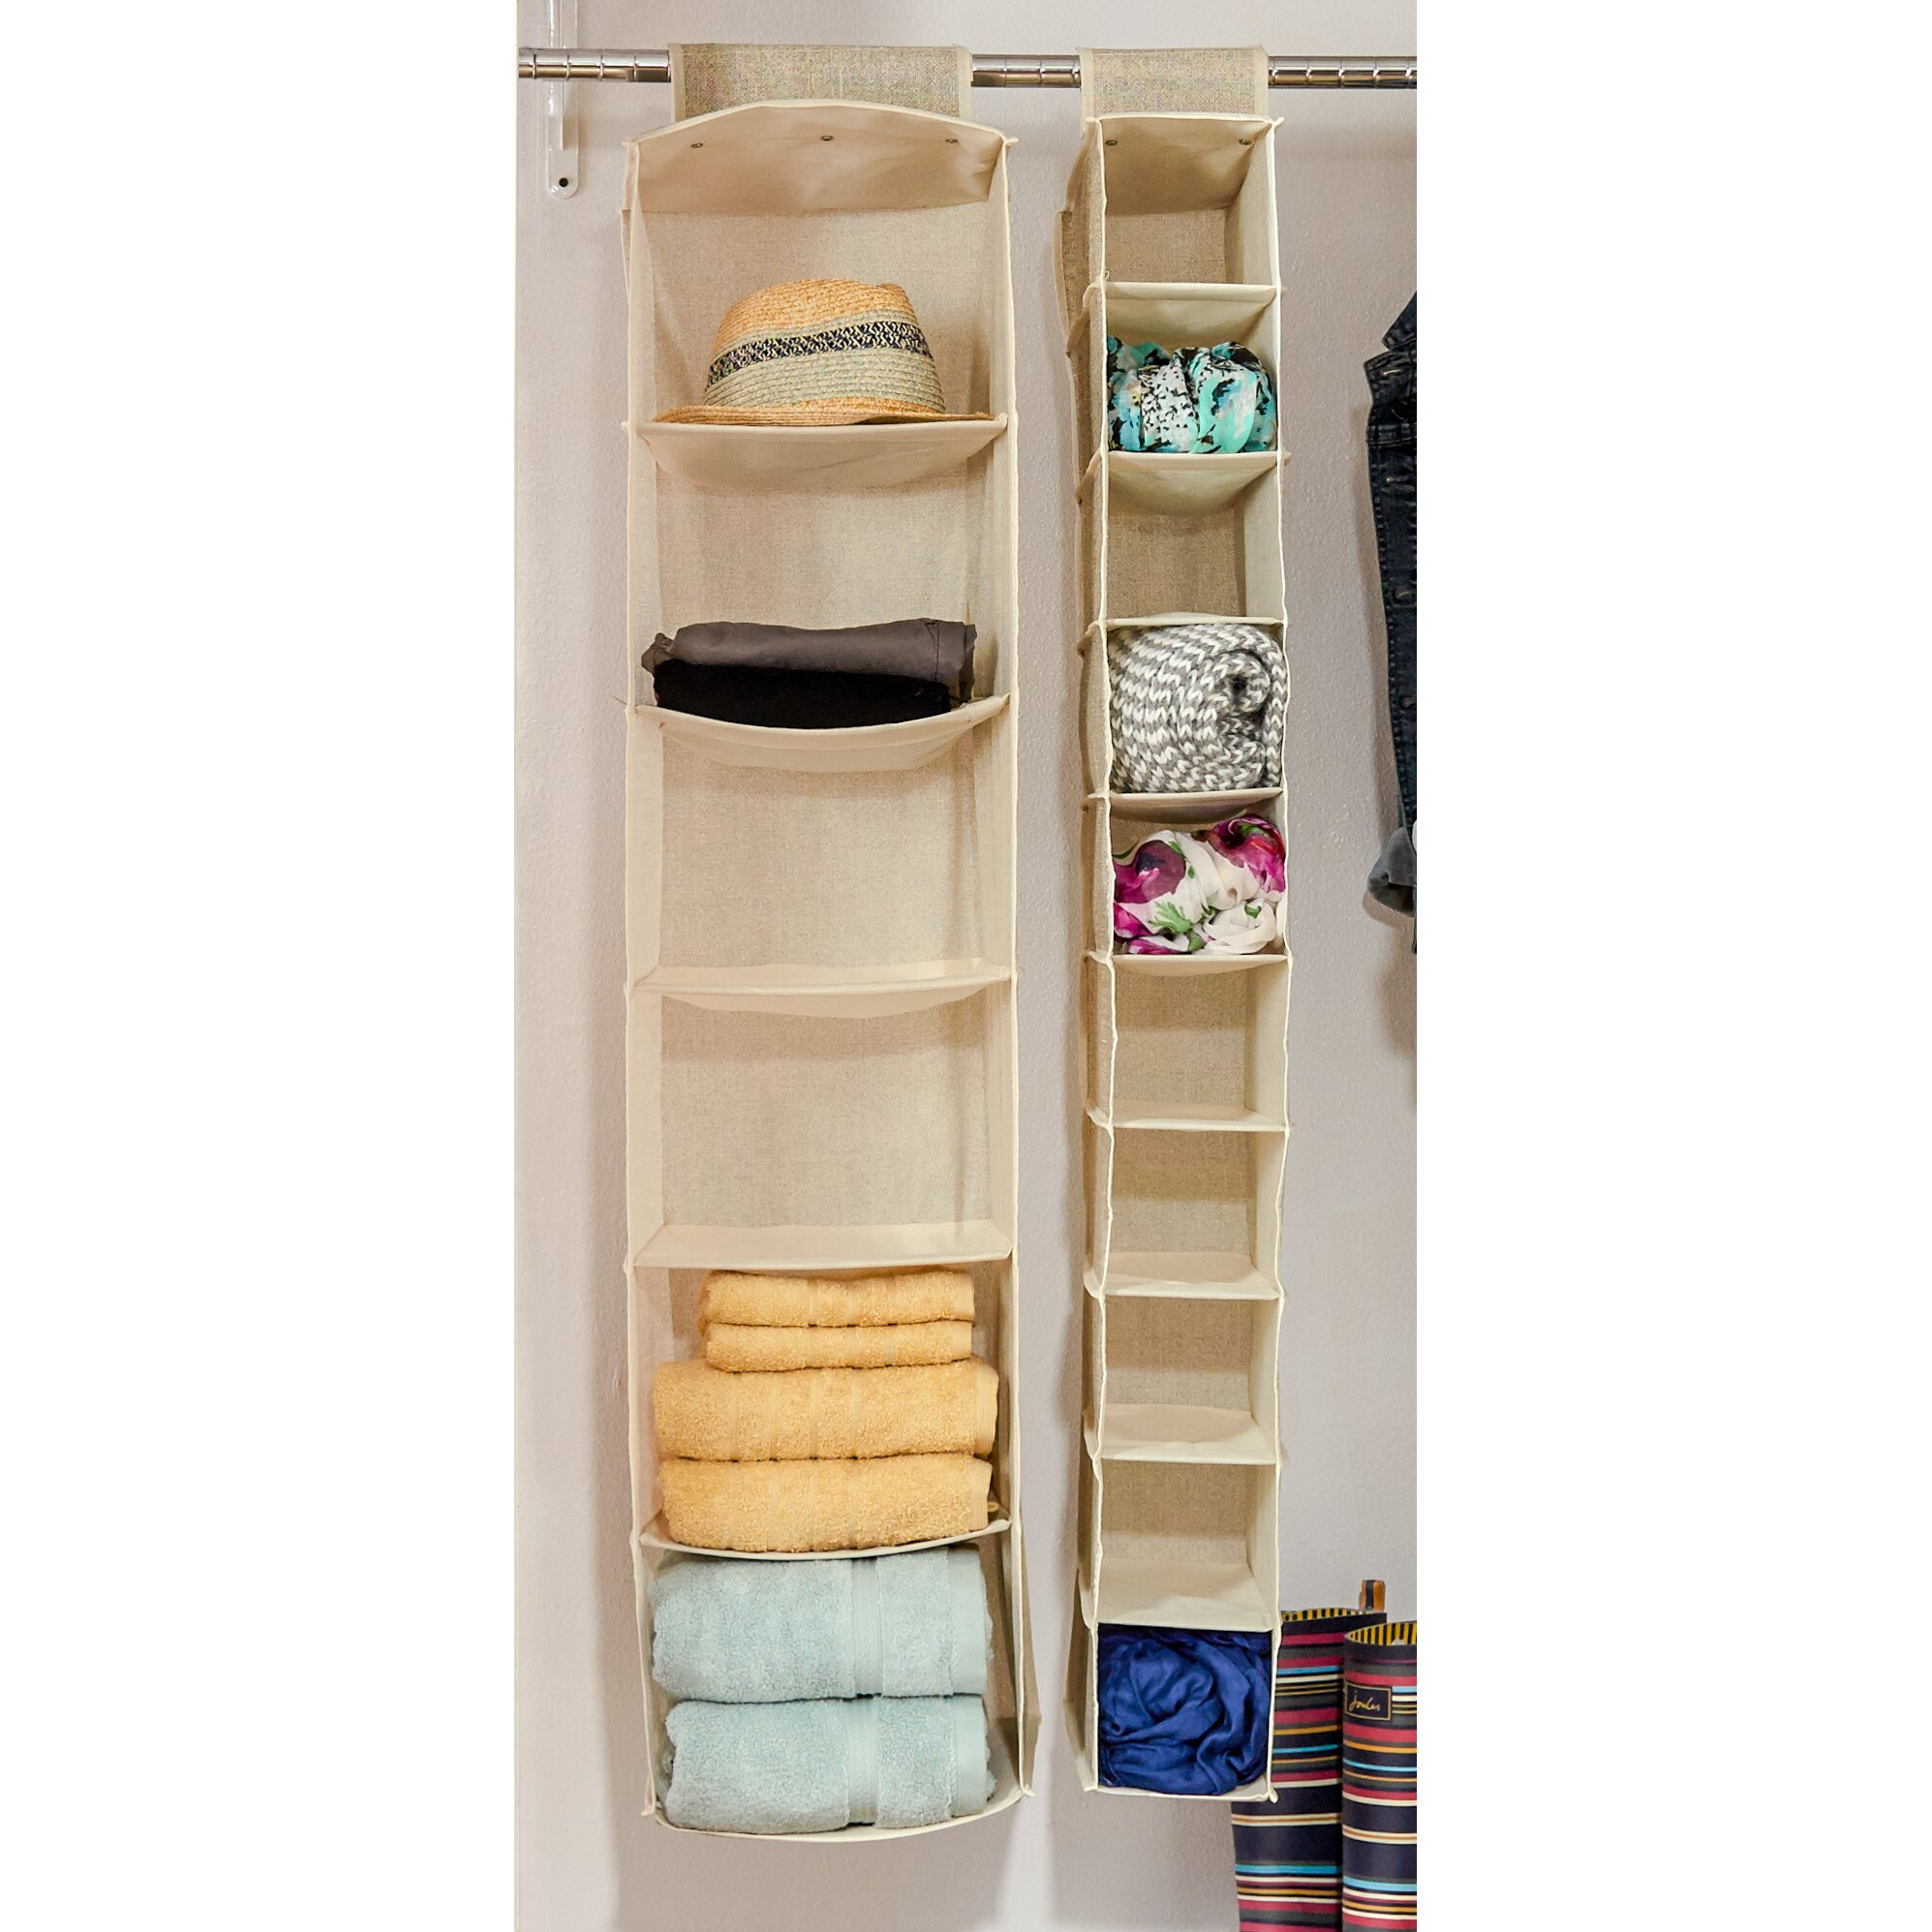 Wayfair Basics Wayfair Basics 10-Compartment Hanging Shoe